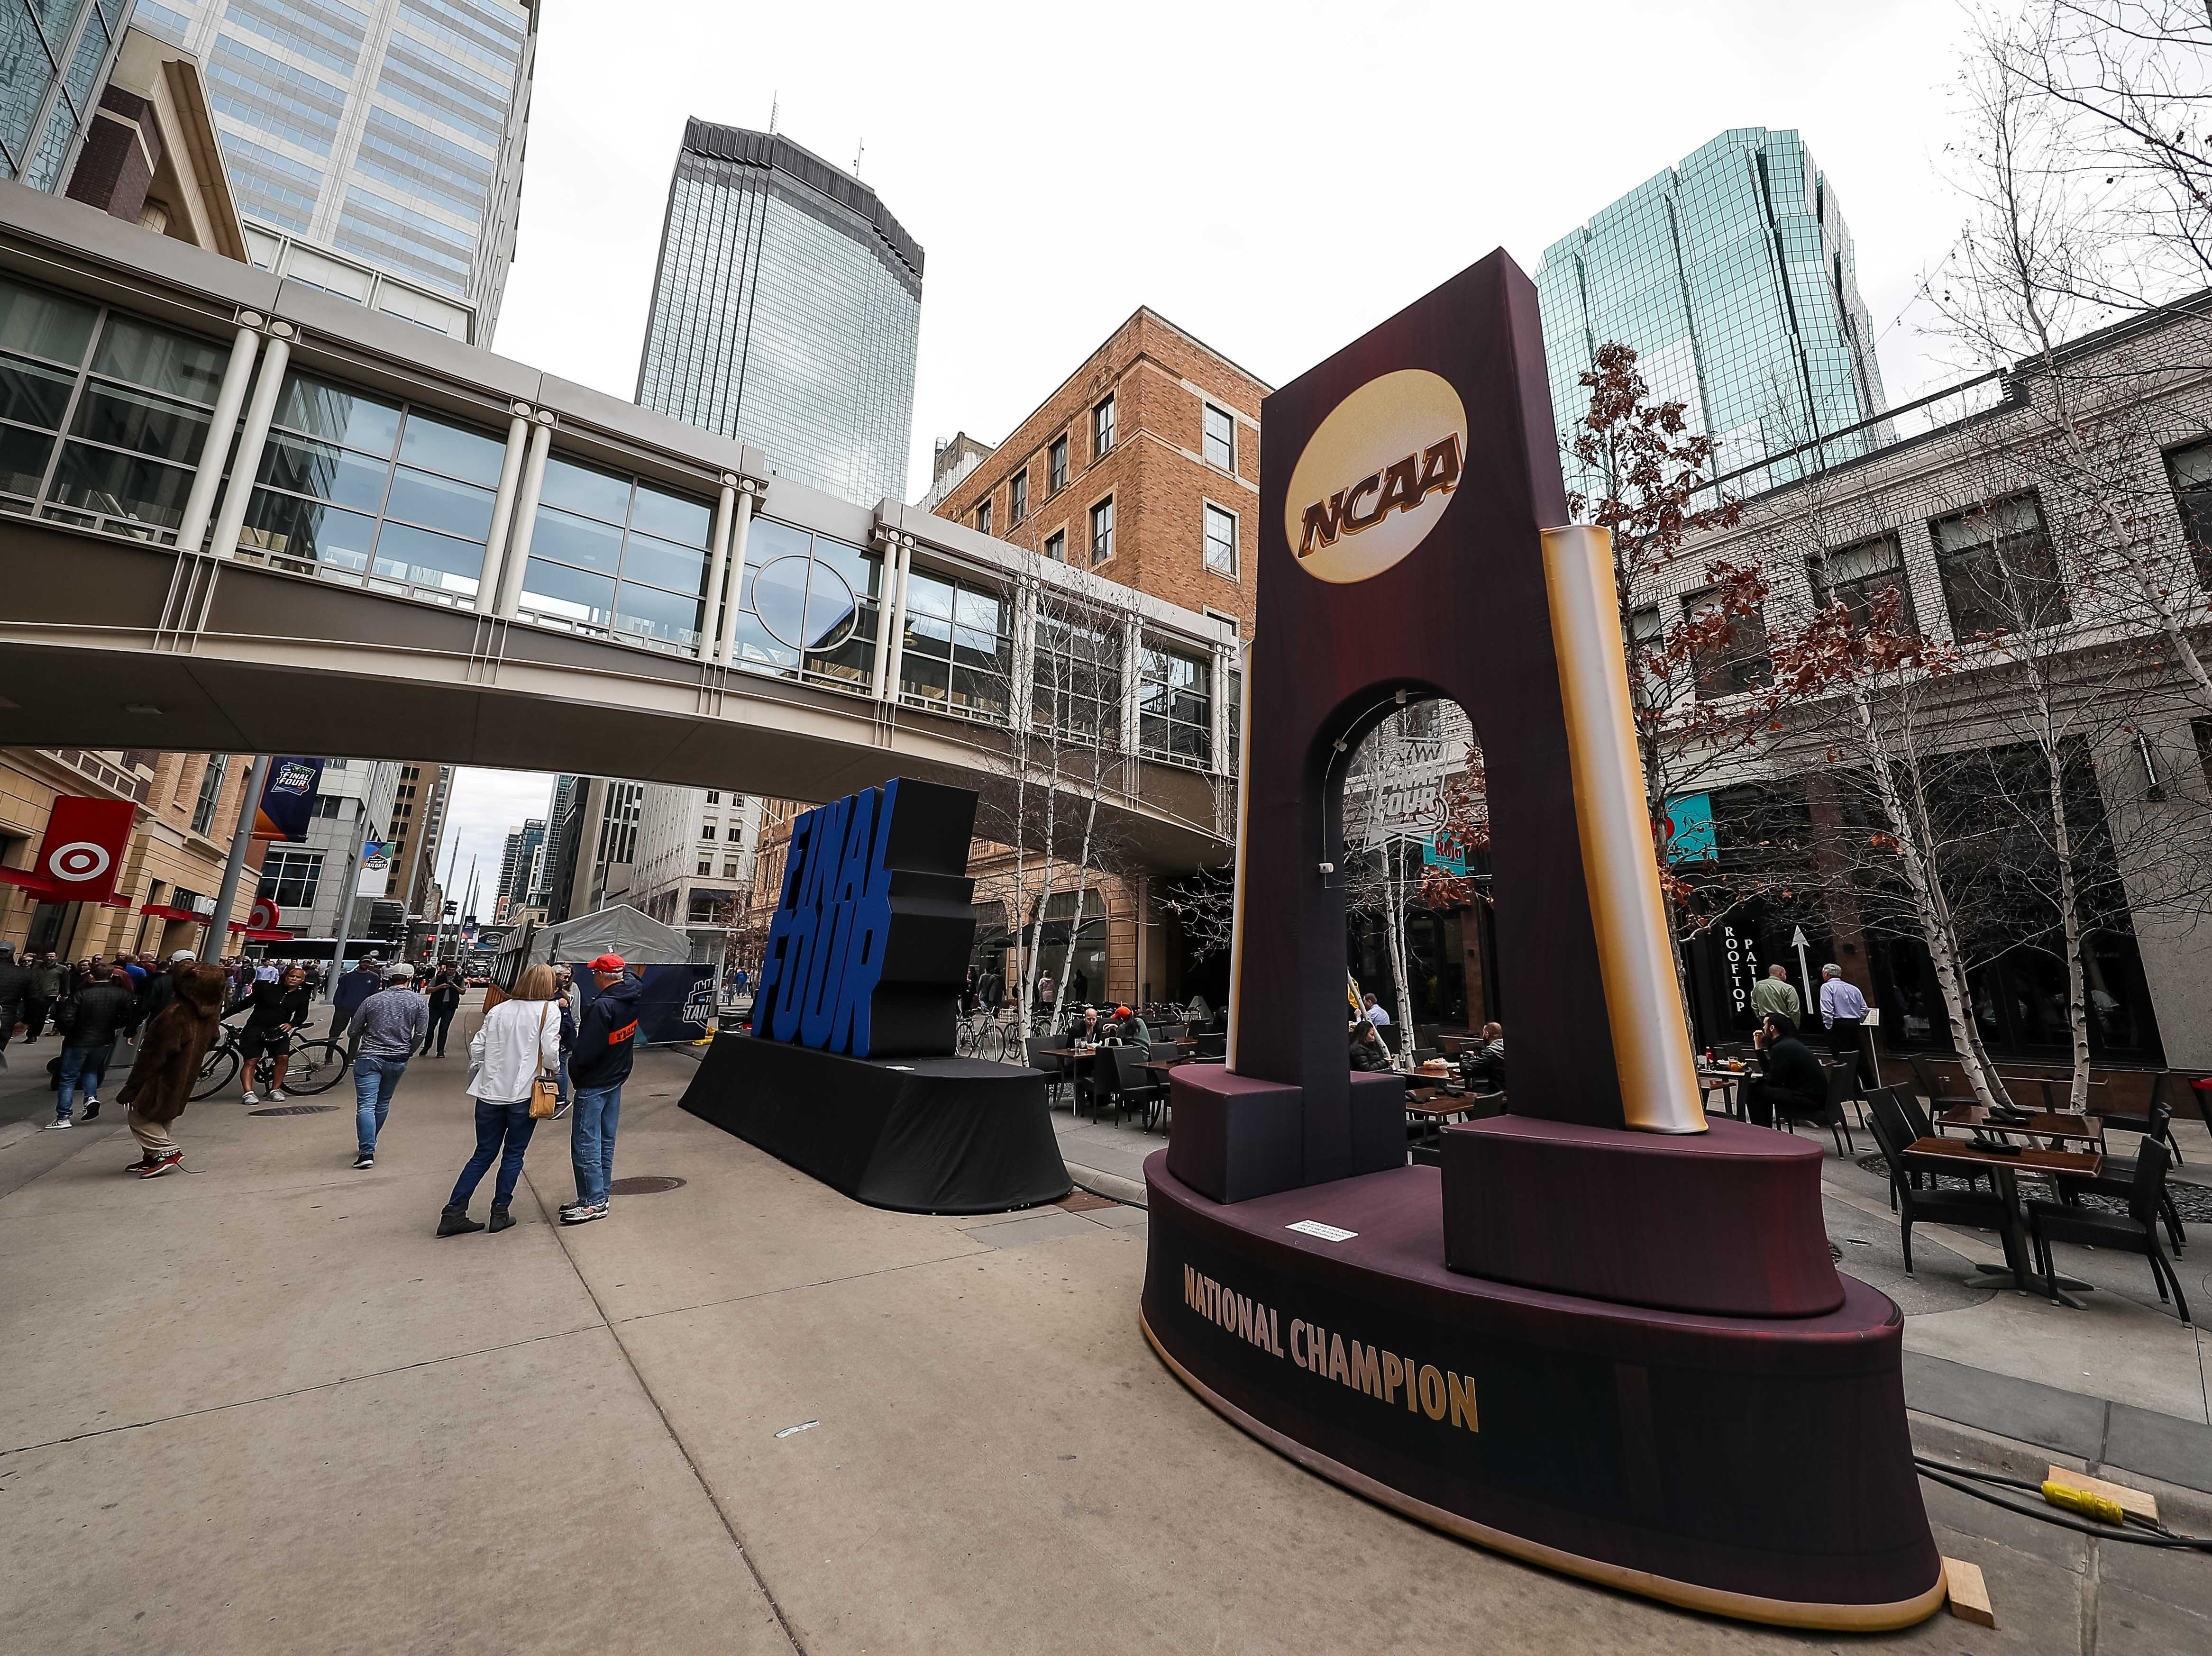 Apr 8, 2019; Minneapolis, MN, USA; A general view of a national championship trophy sculpture outside before the championship game between the Virginia Cavaliers and Texas Tech Red Raiders. Mandatory Credit: Brace Hemmelgarn-USA TODAY Sports